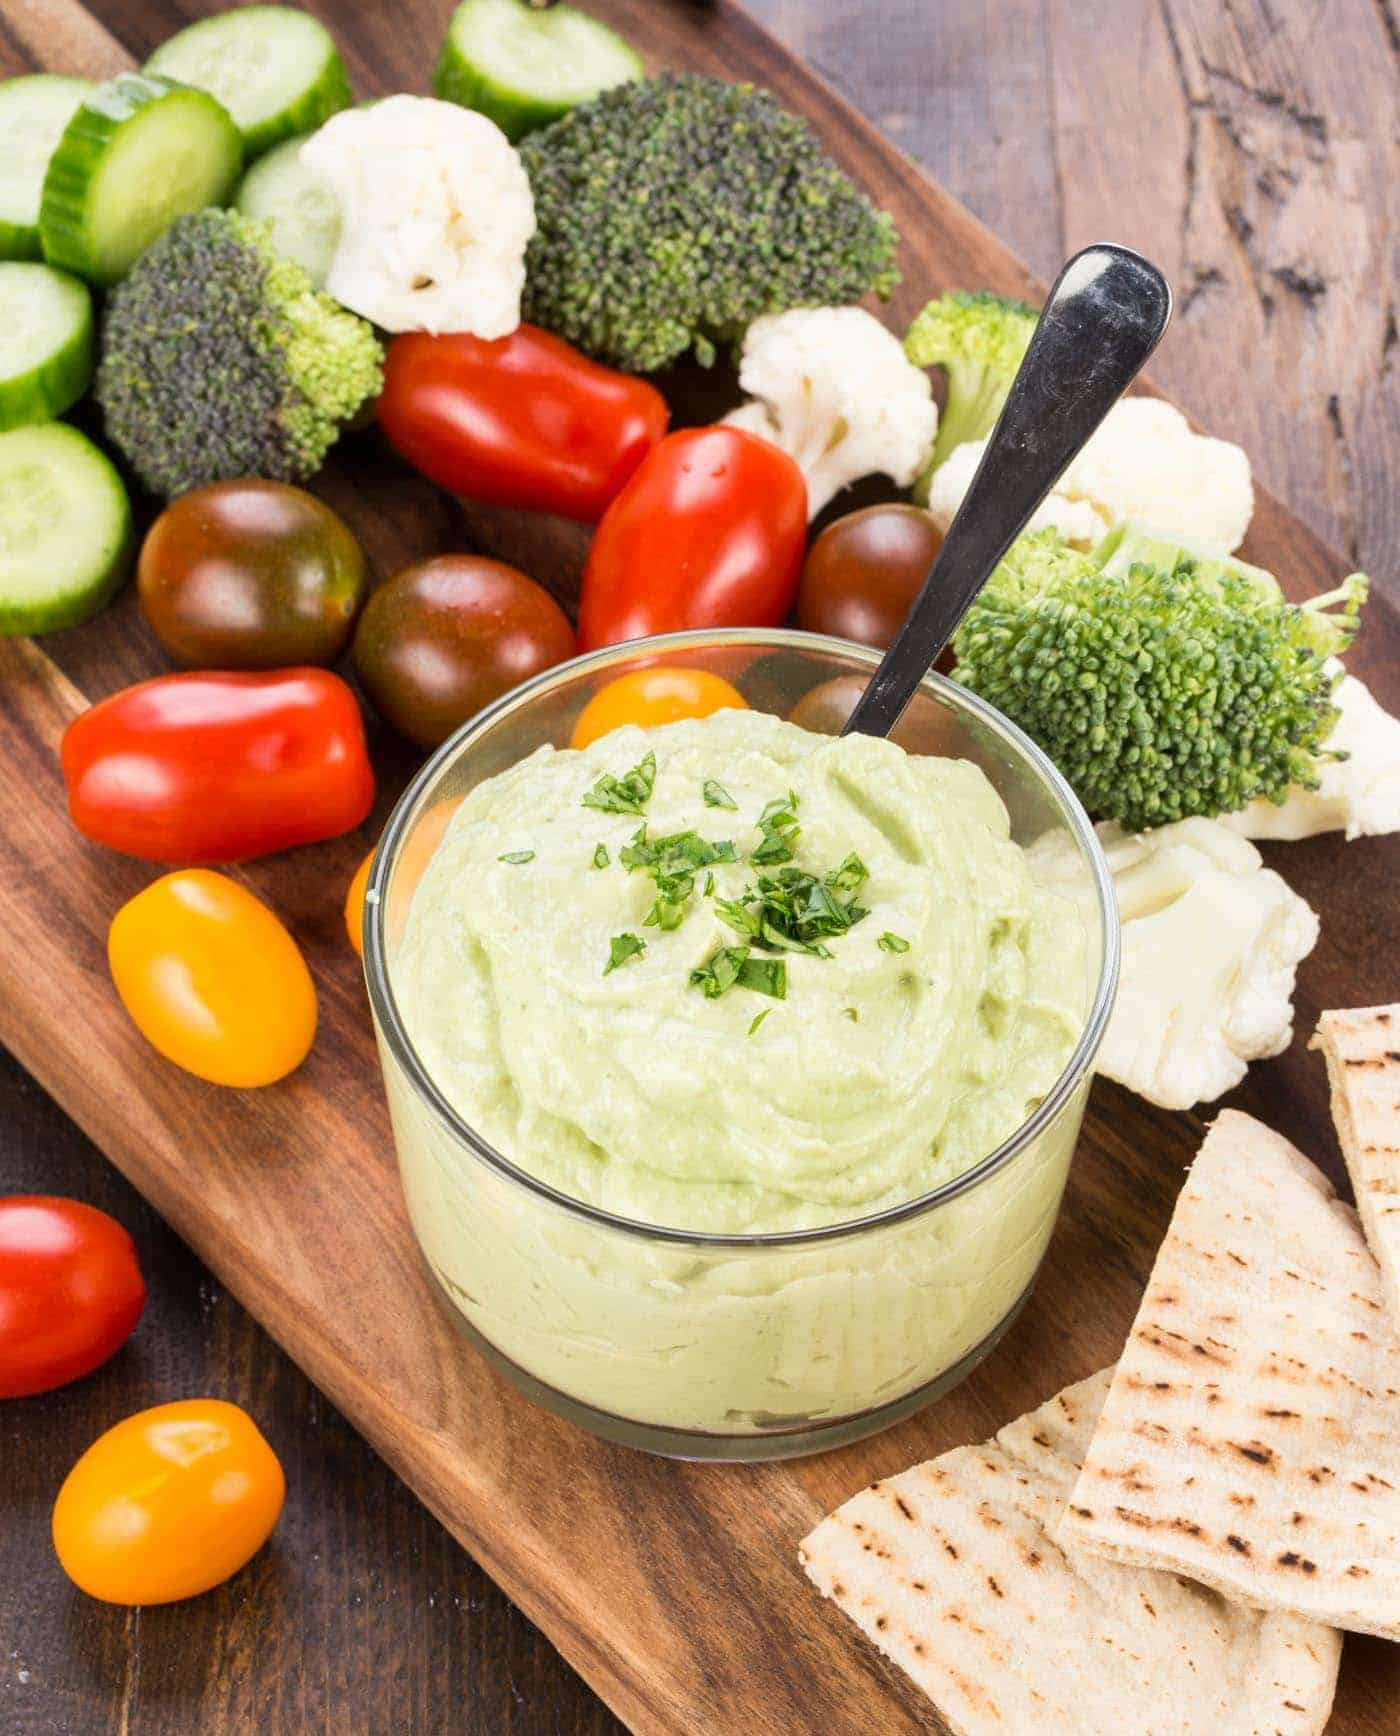 Looking for an alternative to your traditional dill veggie dip? Try this heart-healthy Avocado Cumin Yogurt Dip at your next potluck.